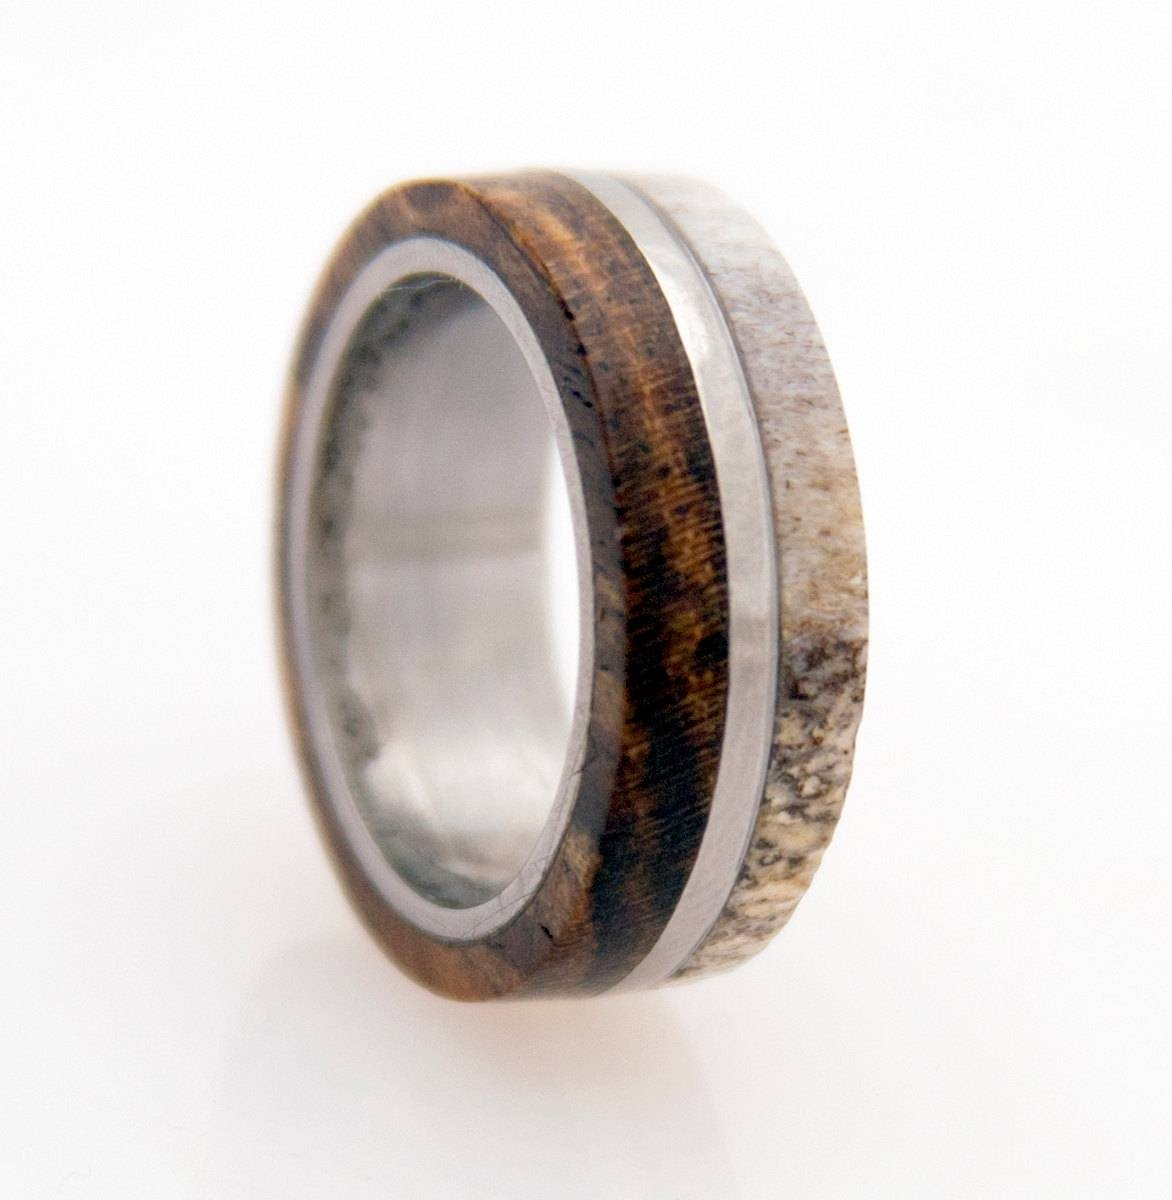 Antler Ring Titanium Ring With Wood Bocote Deer Antler Band With Mens Wedding Bands With Deer Antlers (View 2 of 15)